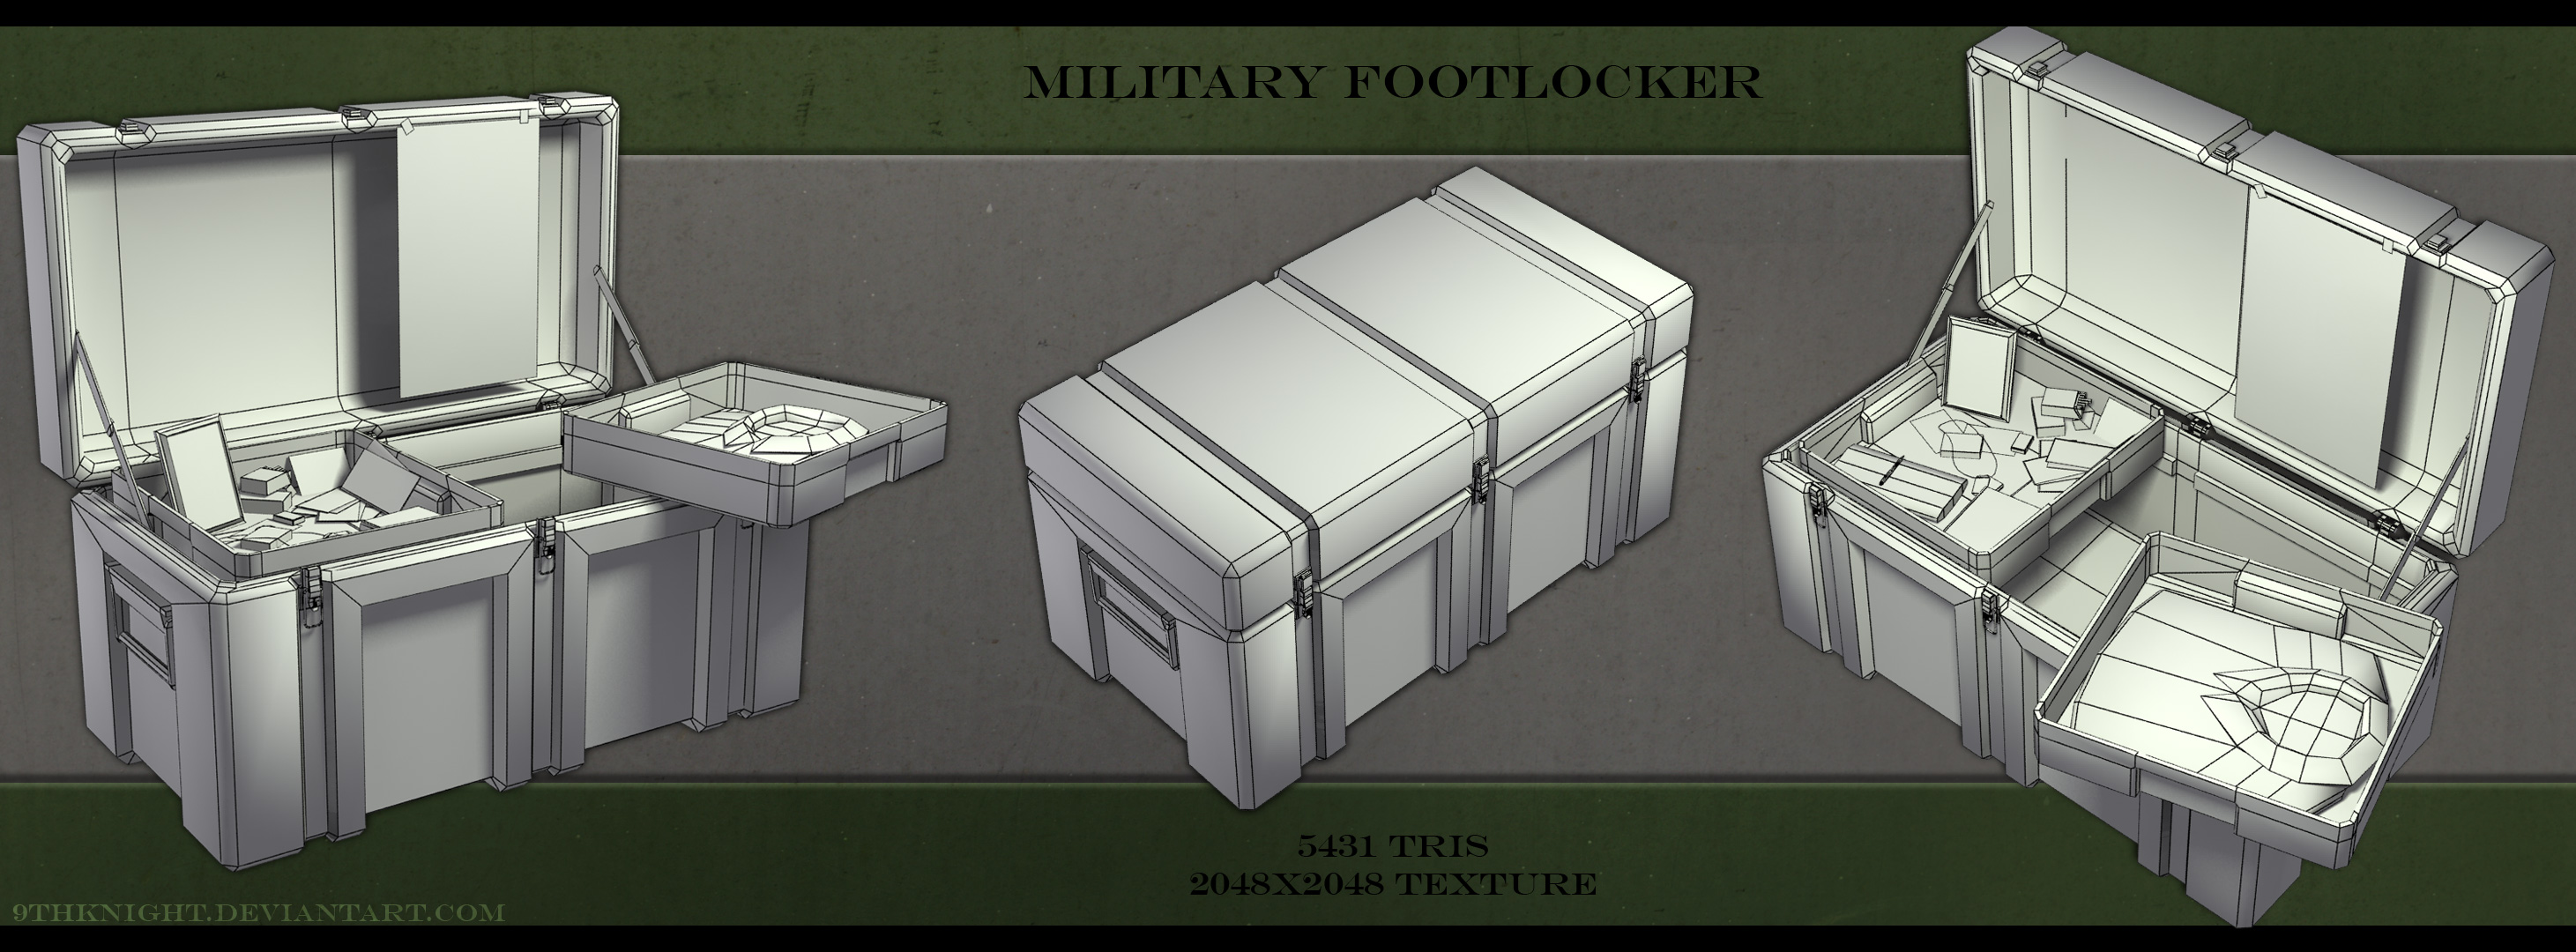 military_footlocker_wireframe_by_9thknight-d3b5k6h.jpg